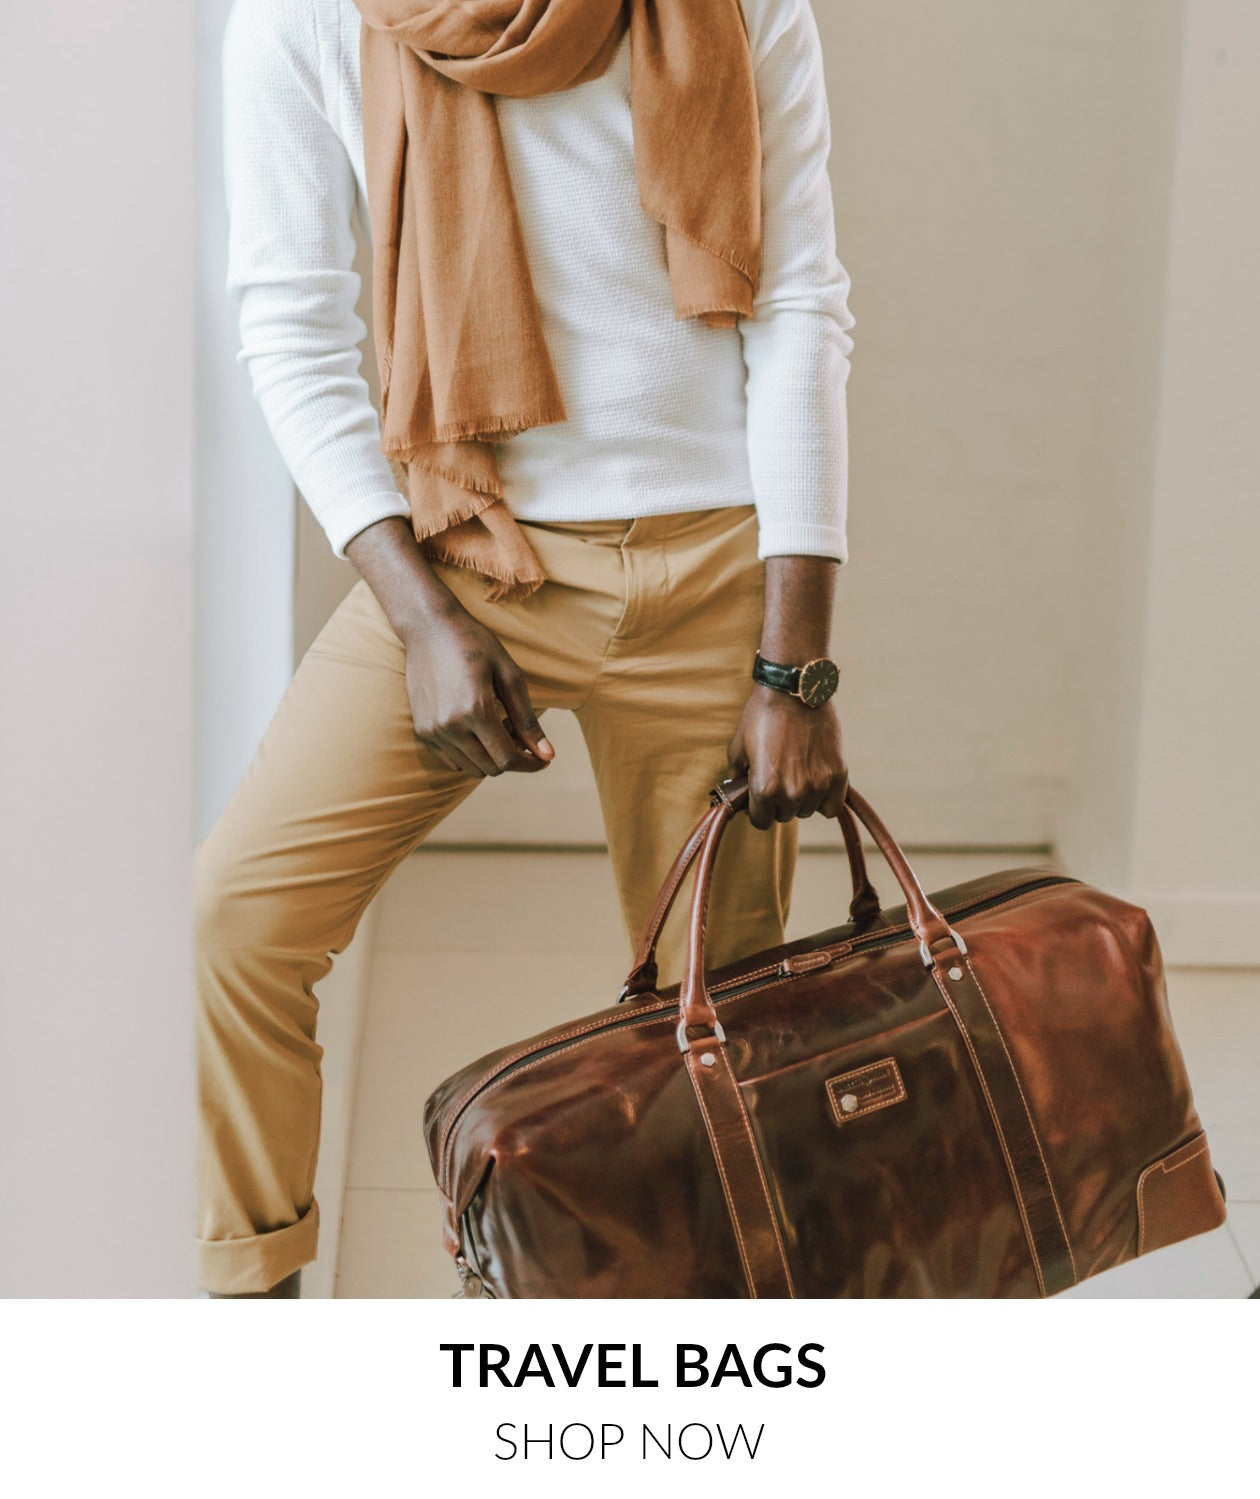 Jekyll And Hide Uk Shop Authentic Luxury Leather Products Online Travel Pounch Tas 6 In 1 Bag Now